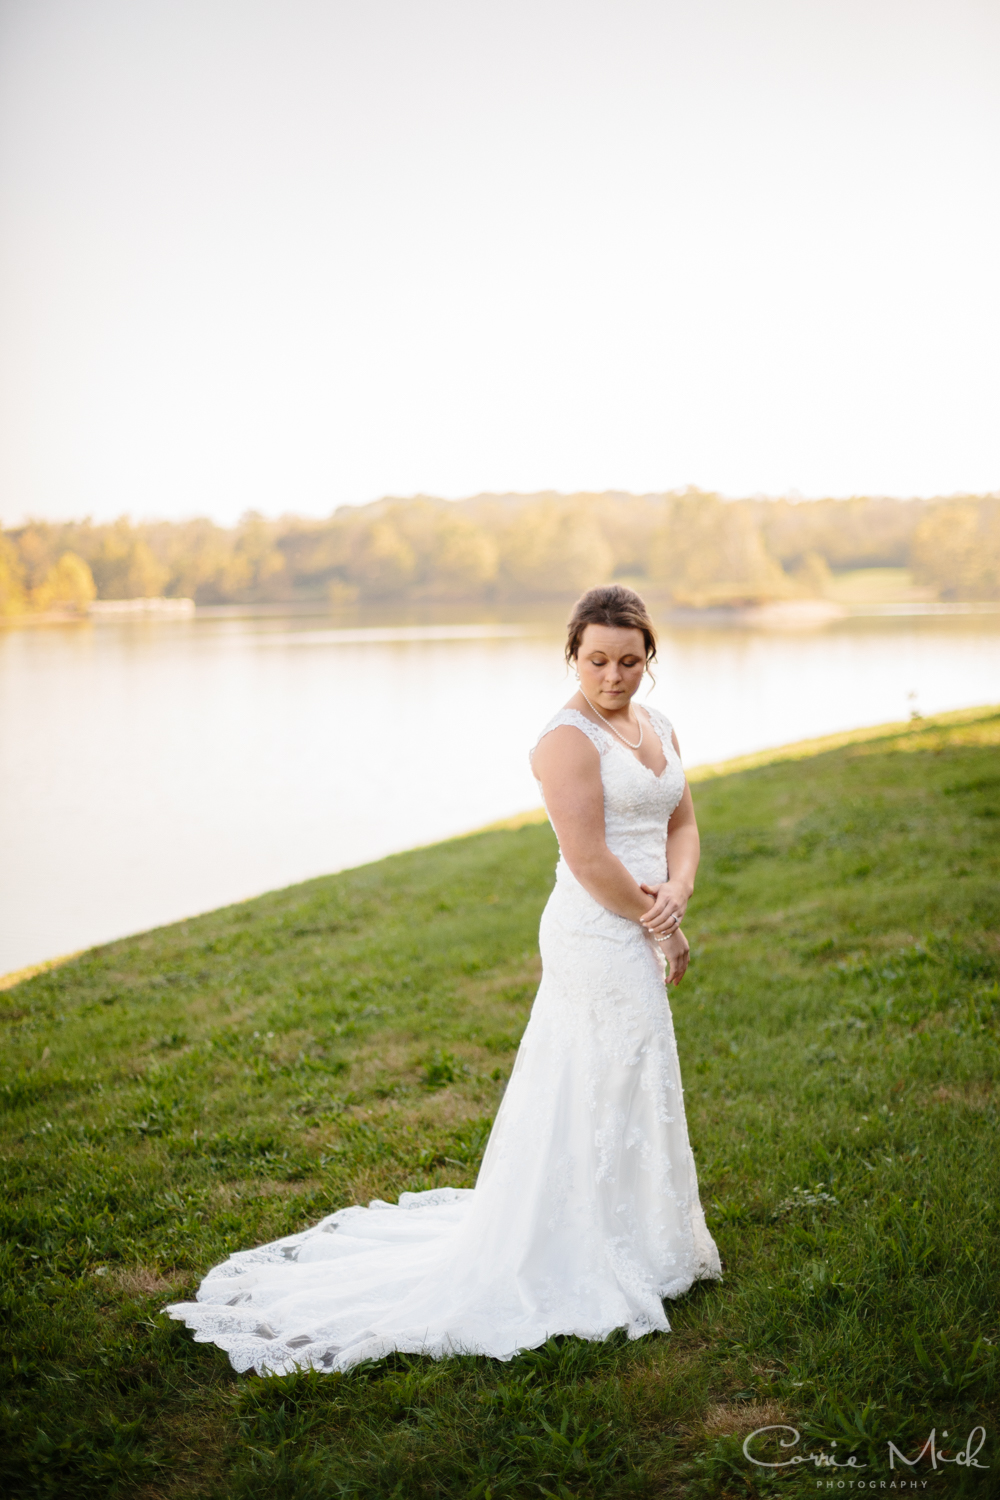 Lake Lyndsay Wedding - Portland, Oregon Photographer - Corrie Mick Photography-116.jpg